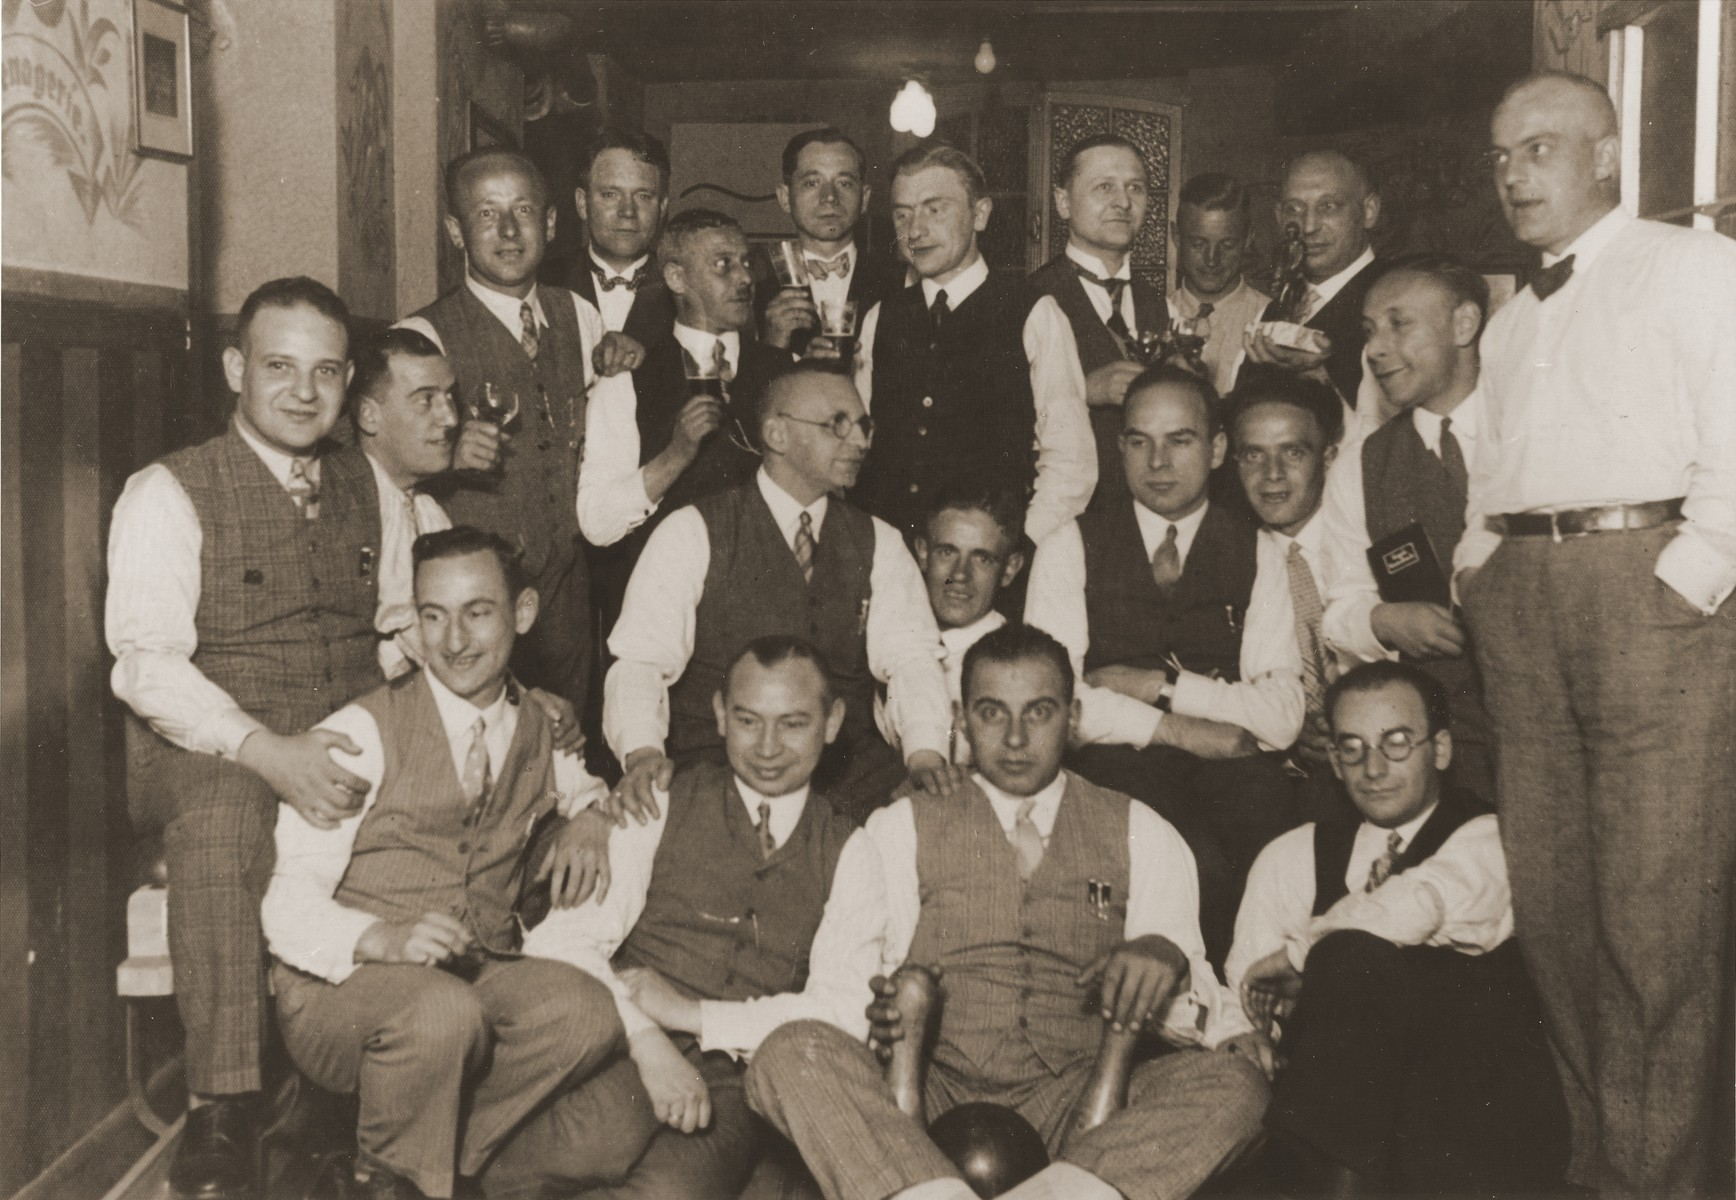 Group portrait of members of the Jewish bowling club (Kegelclub) of Essen at a match in Werden, a suburb of Essen.  Among those pictured are the donor's father, Gustav Straus (front row, right); Ludwig Schartenberg (front row third from the right); and Ernst Hoeflich (standing, far left); Luz Braunschwig; Otto Kahn; Erich Anhalt; Max Schwartz; Joseph Schwartz; Otto Schiff; and Sam Meyer.